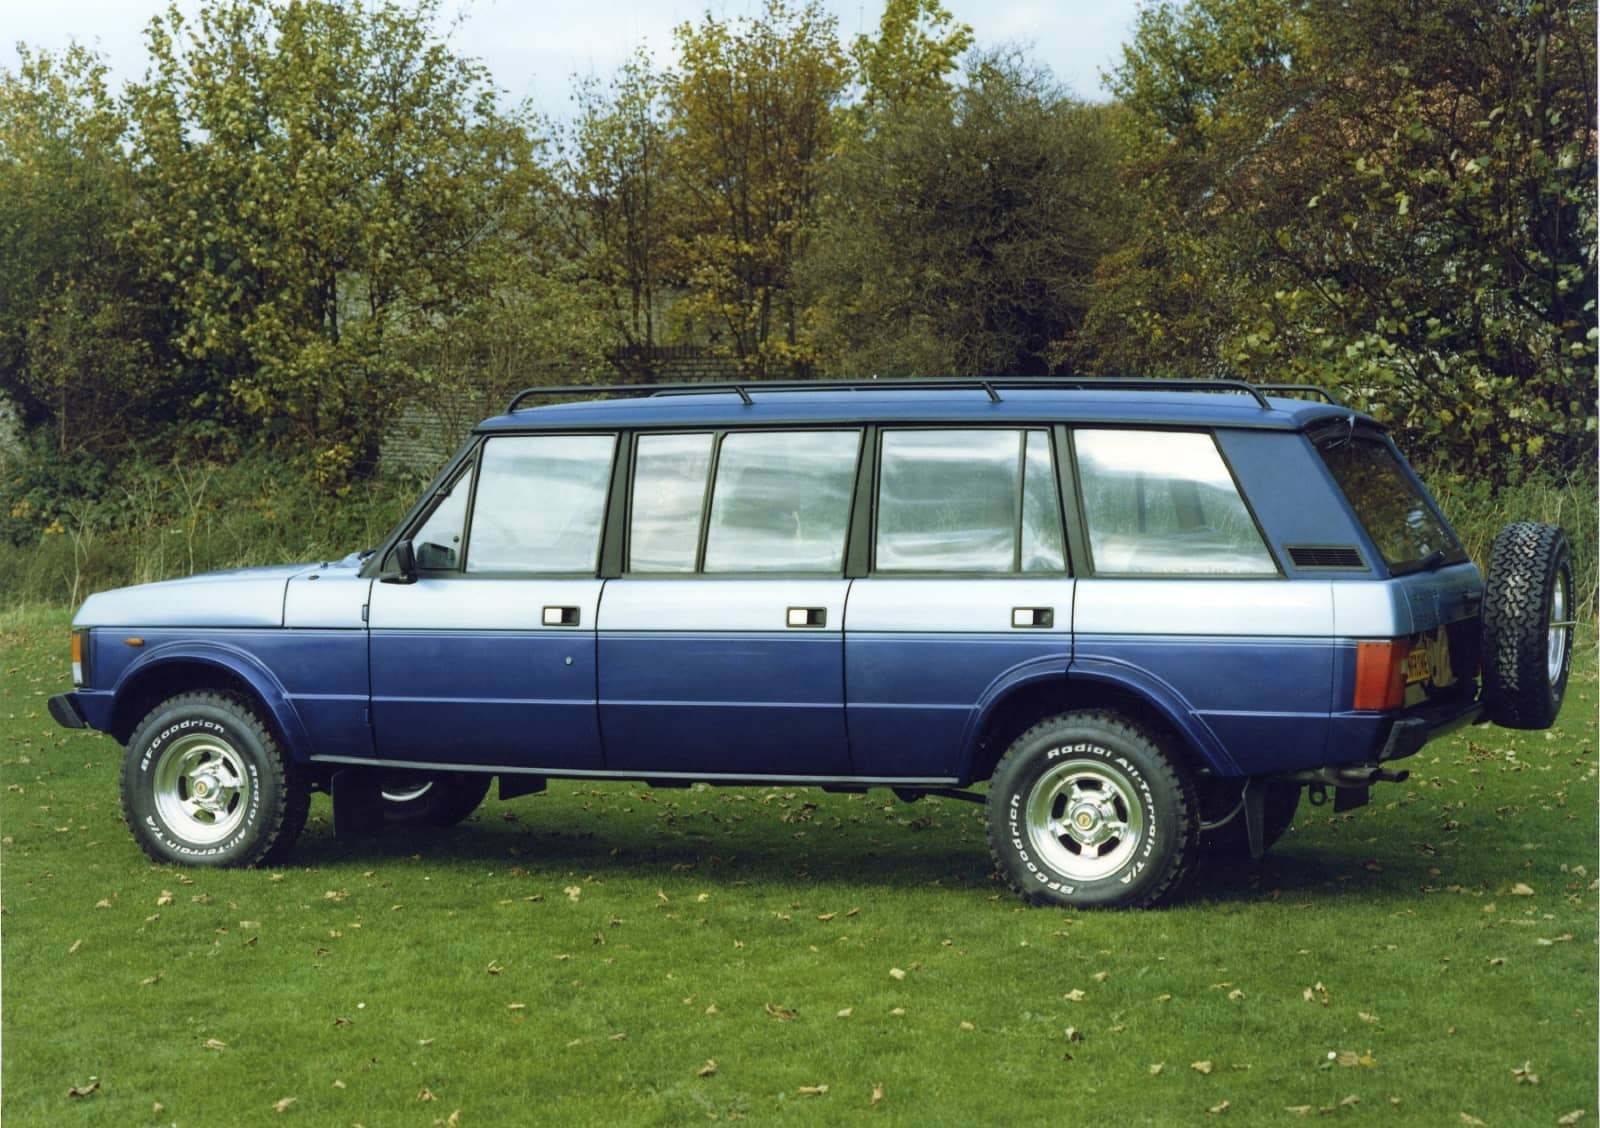 1985 Range Rover Stretched 6-Door (company unknown)